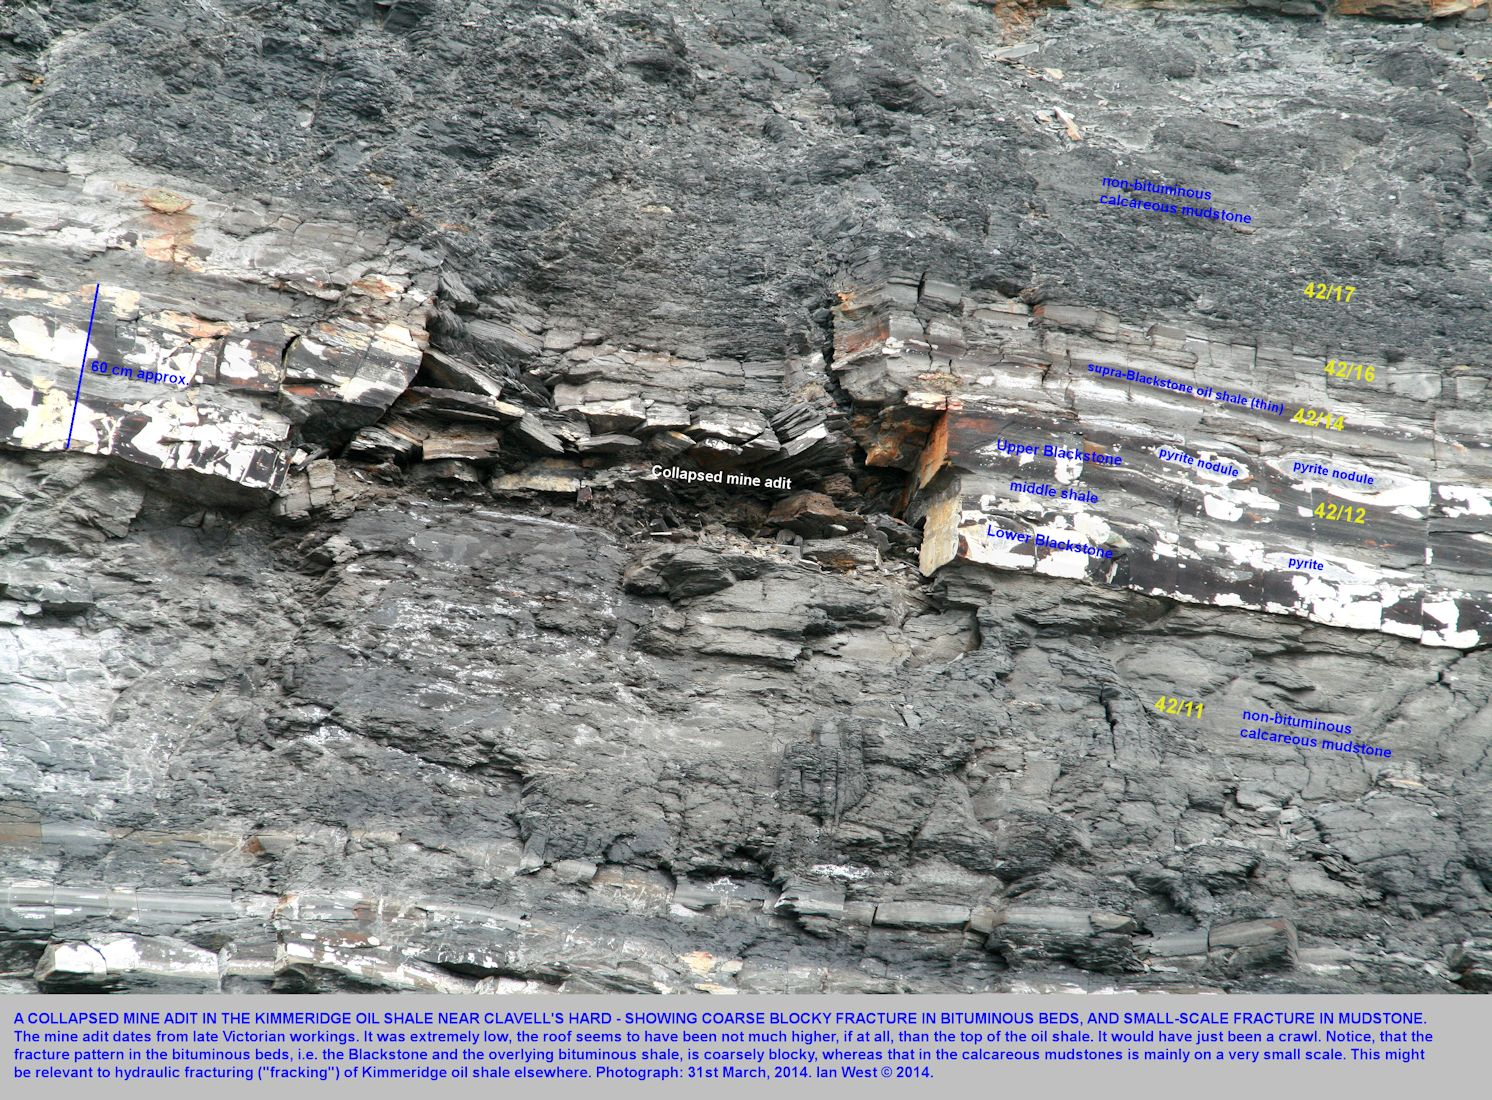 Kimmeridge oil shale, fracture pattern as seen at collapsed mine workings, near Clavell's Hard, east of Kimmeridge Bay, Dorset, 31st March 2014